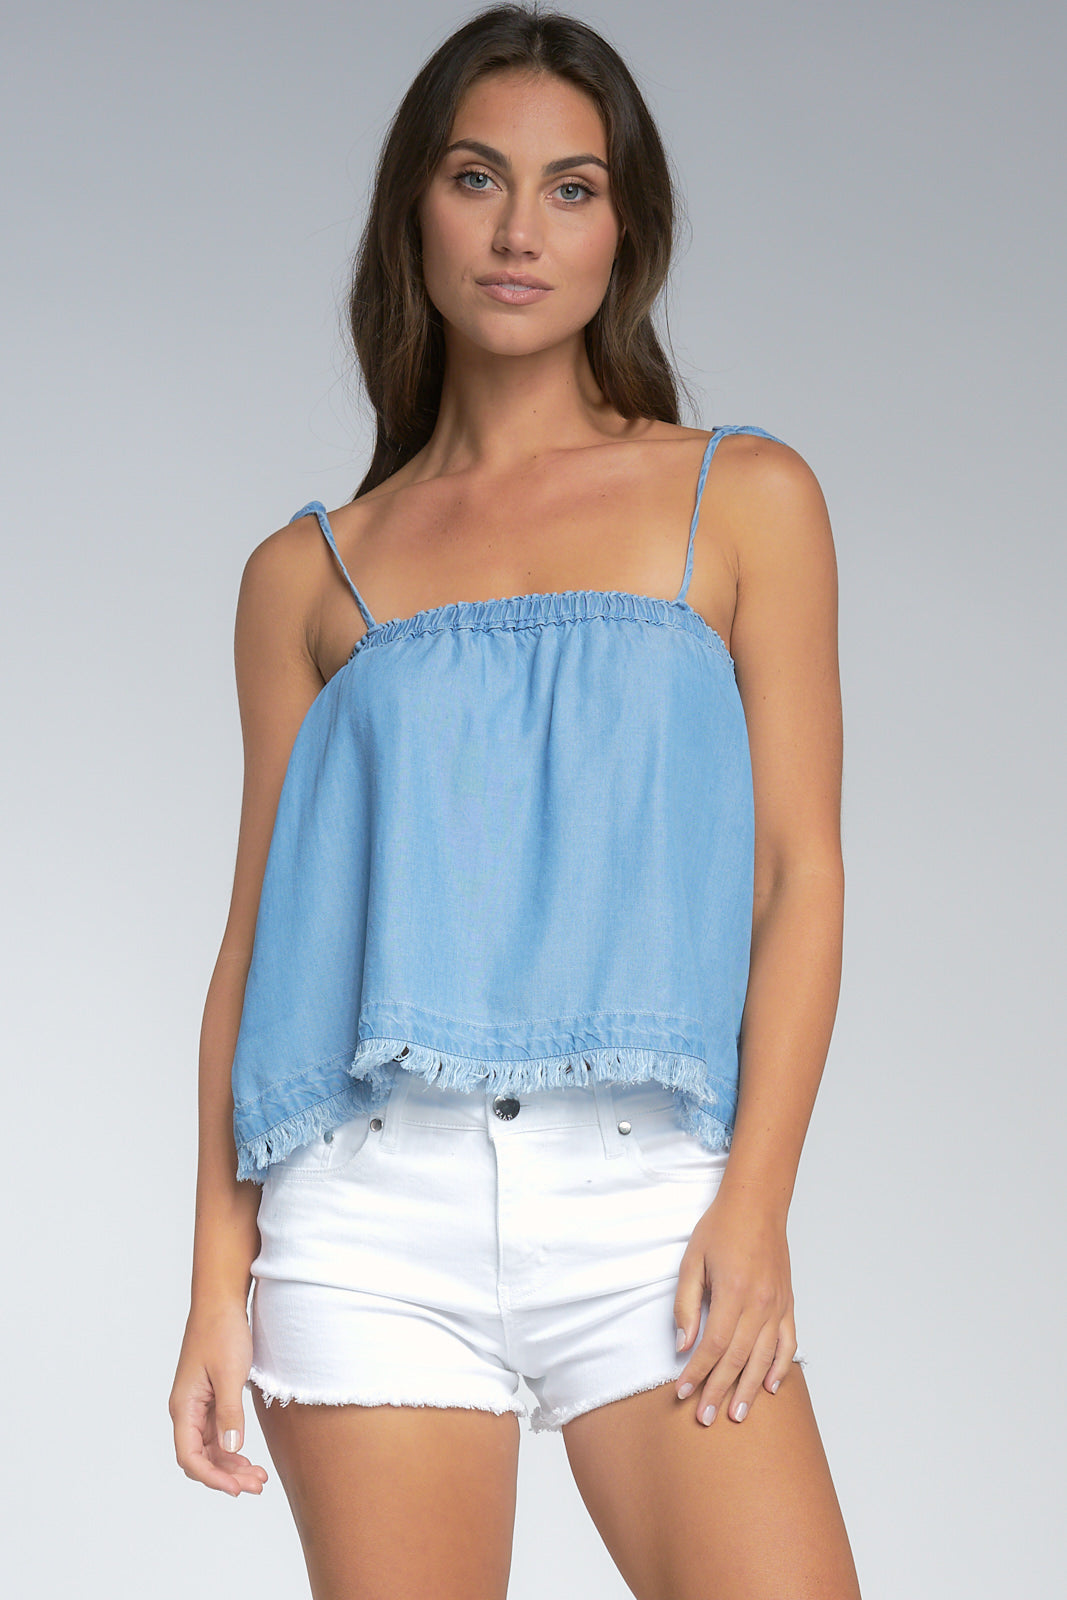 Elan - Denim Cami (VTD10335, Sky Blue Denim)